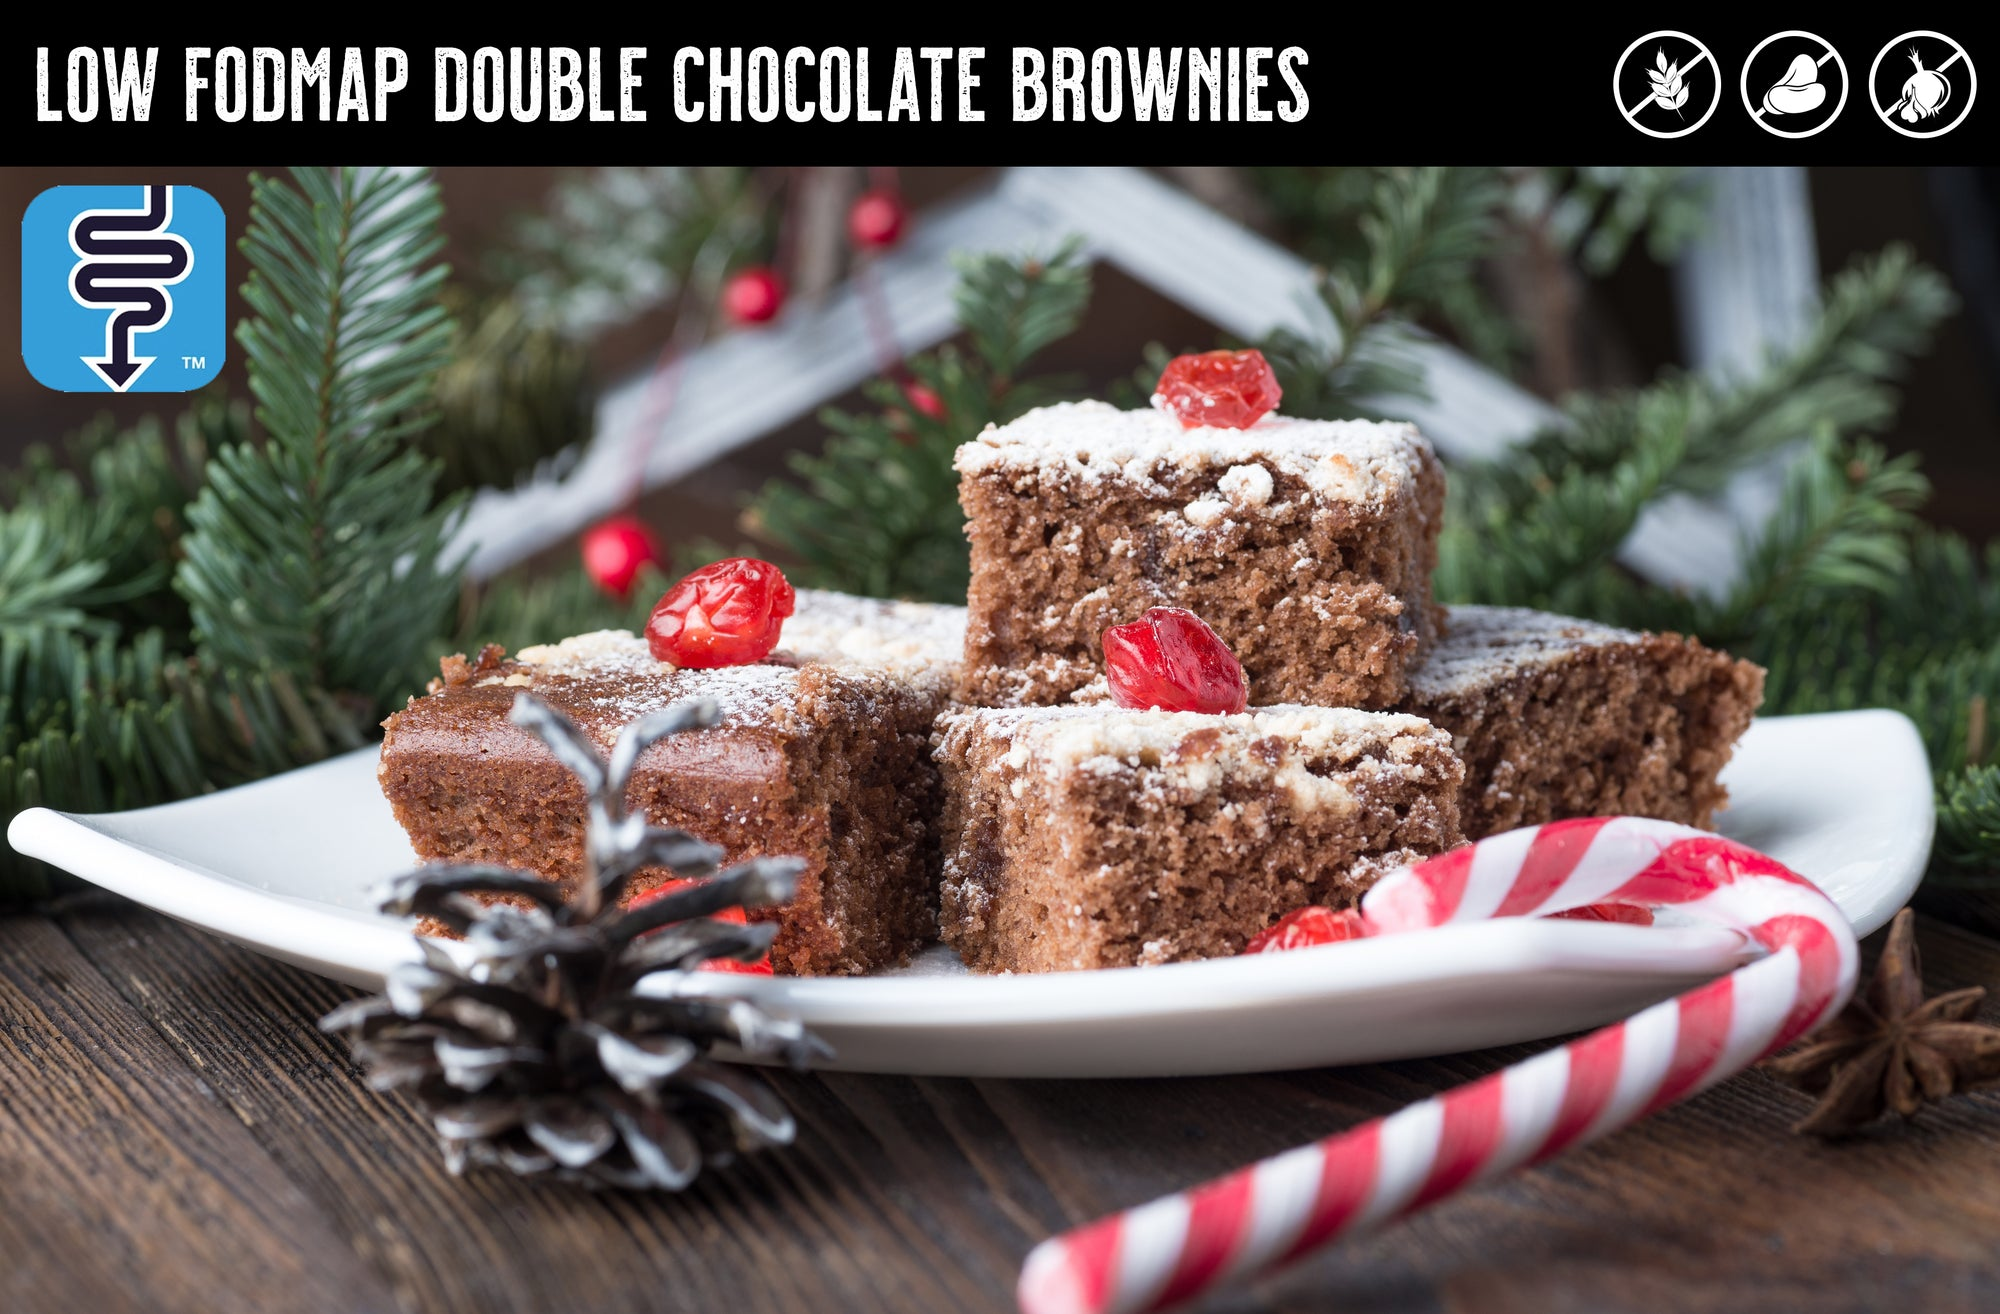 MONASH UNIVERSITY LOW FODMAP DOUBLE CHOCOLATE BROWNIES